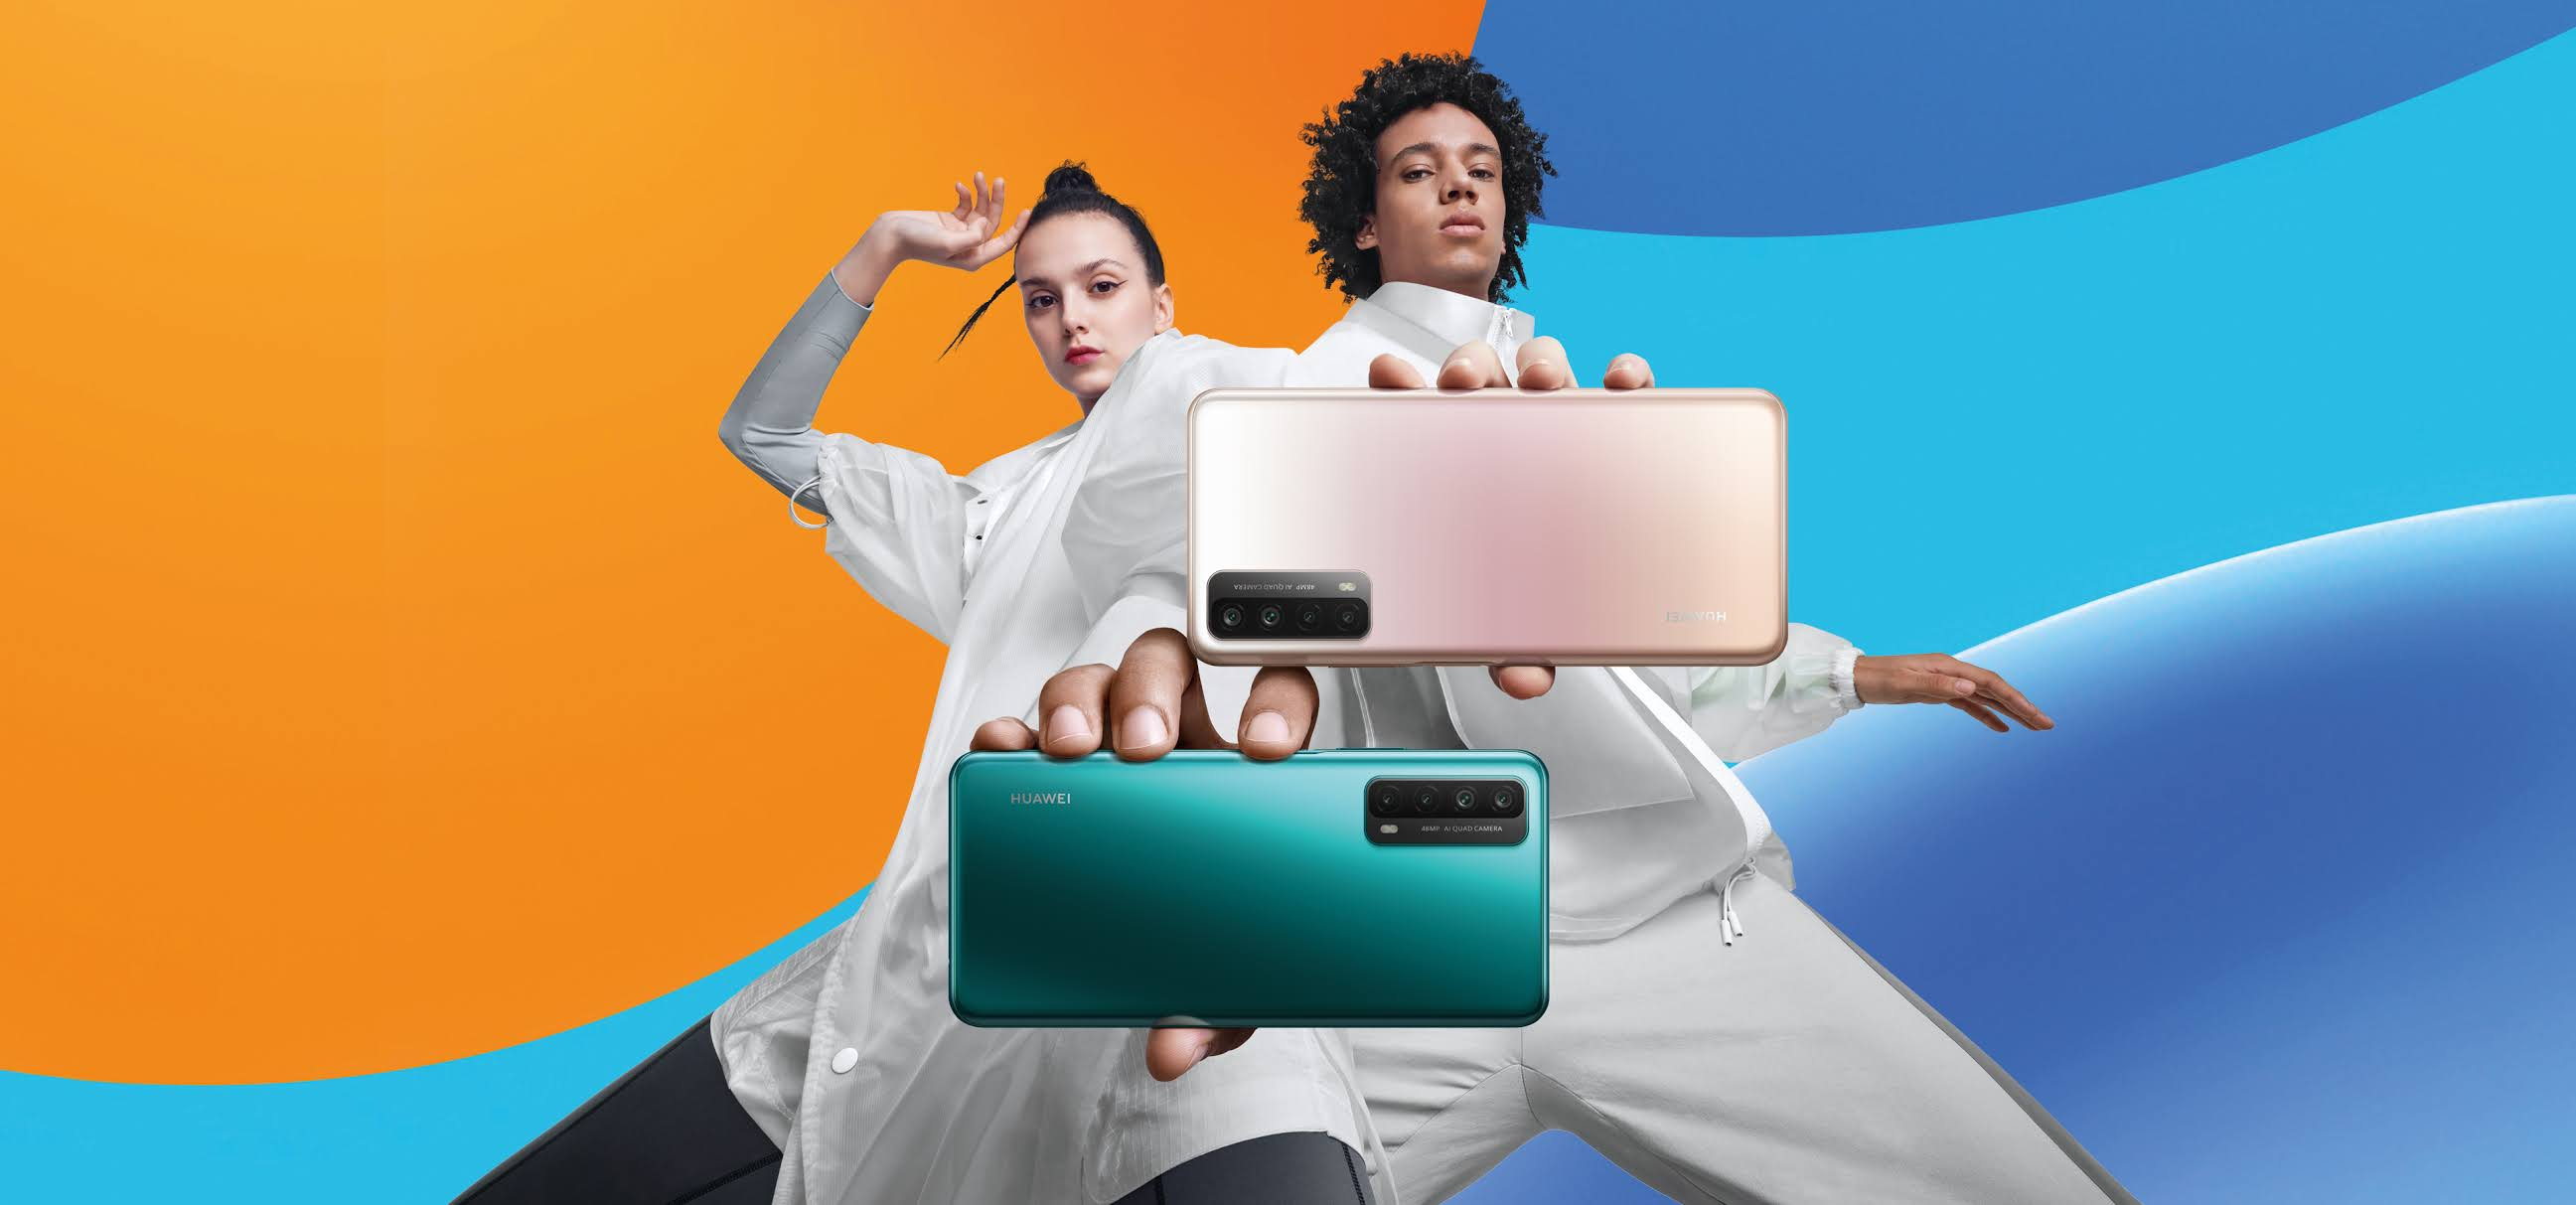 Nuovo Huawei P Smart 2021 ufficiale a 229 euro